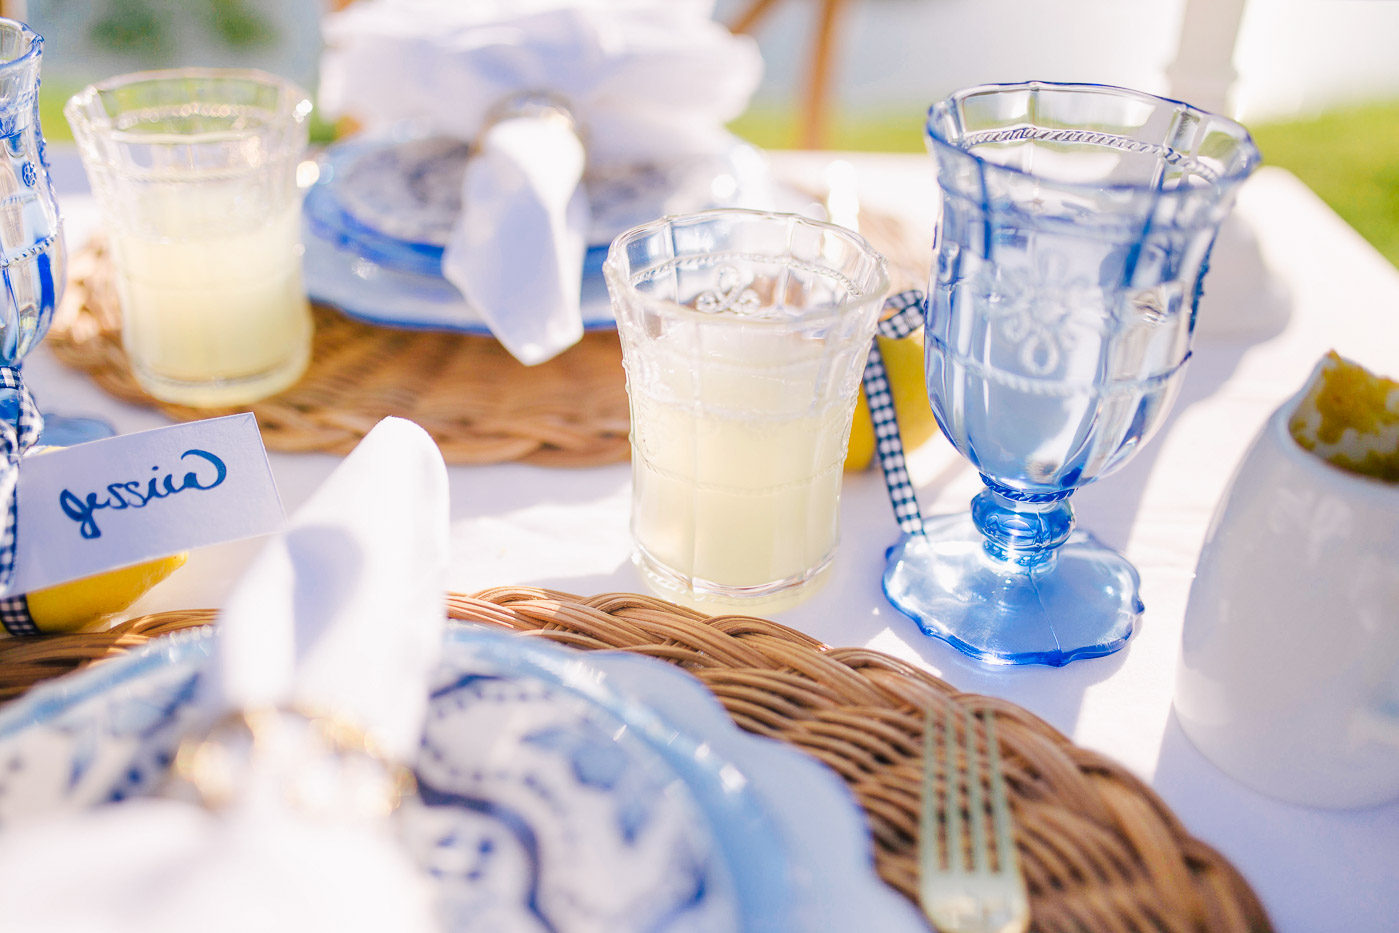 blue, white, and yellow tables cape with homemade lemonade in a glass pitcher